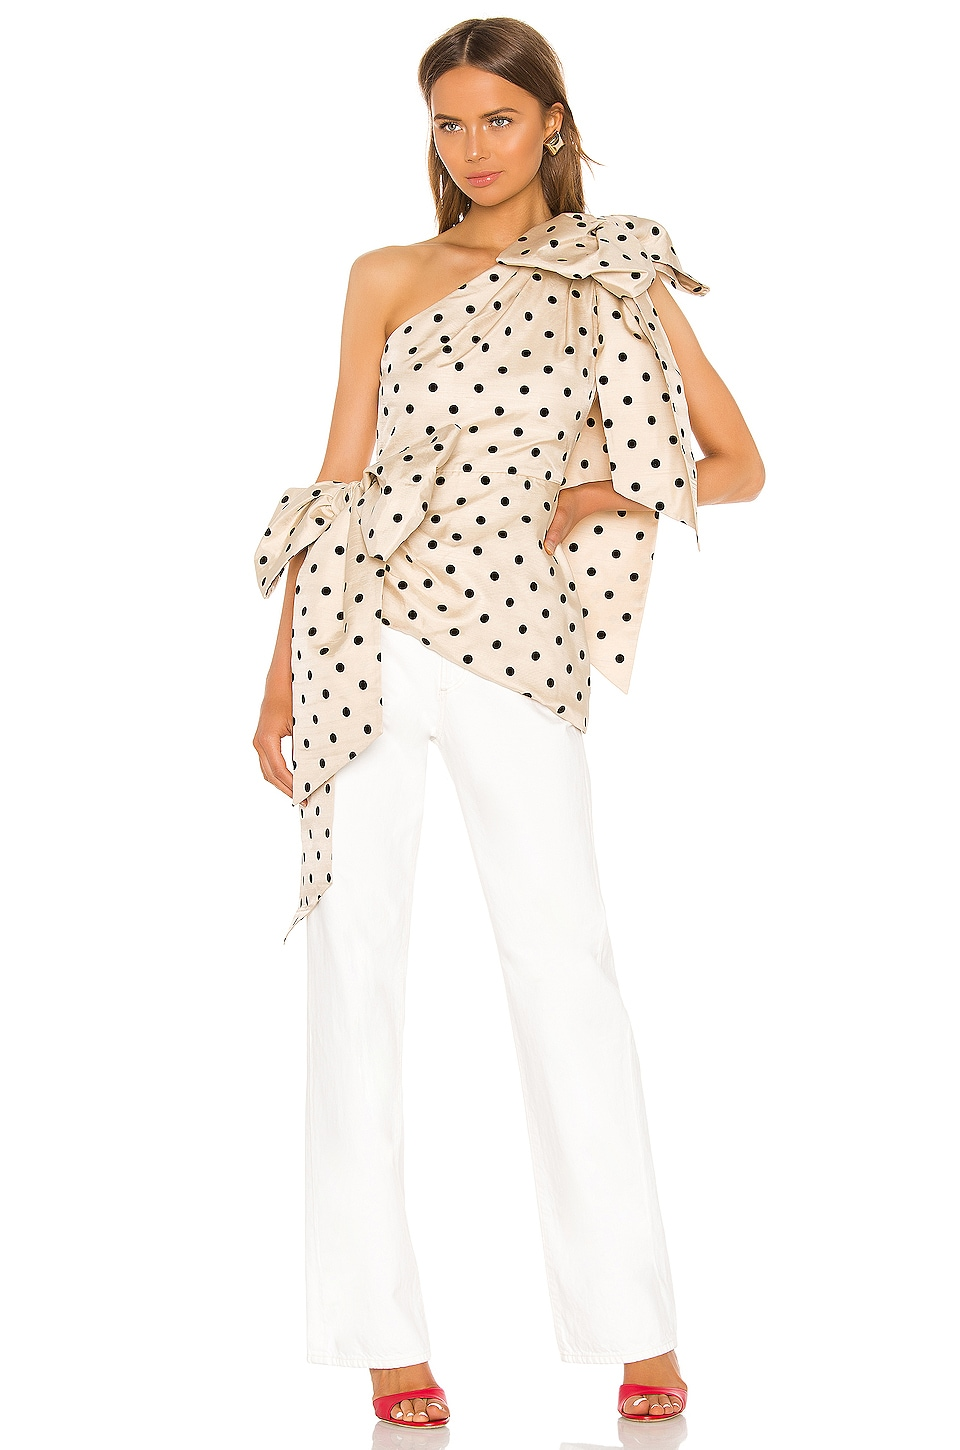 MARIANNA SENCHINA One Shoulder Bow Blouse in Nude With Black Polka Dot